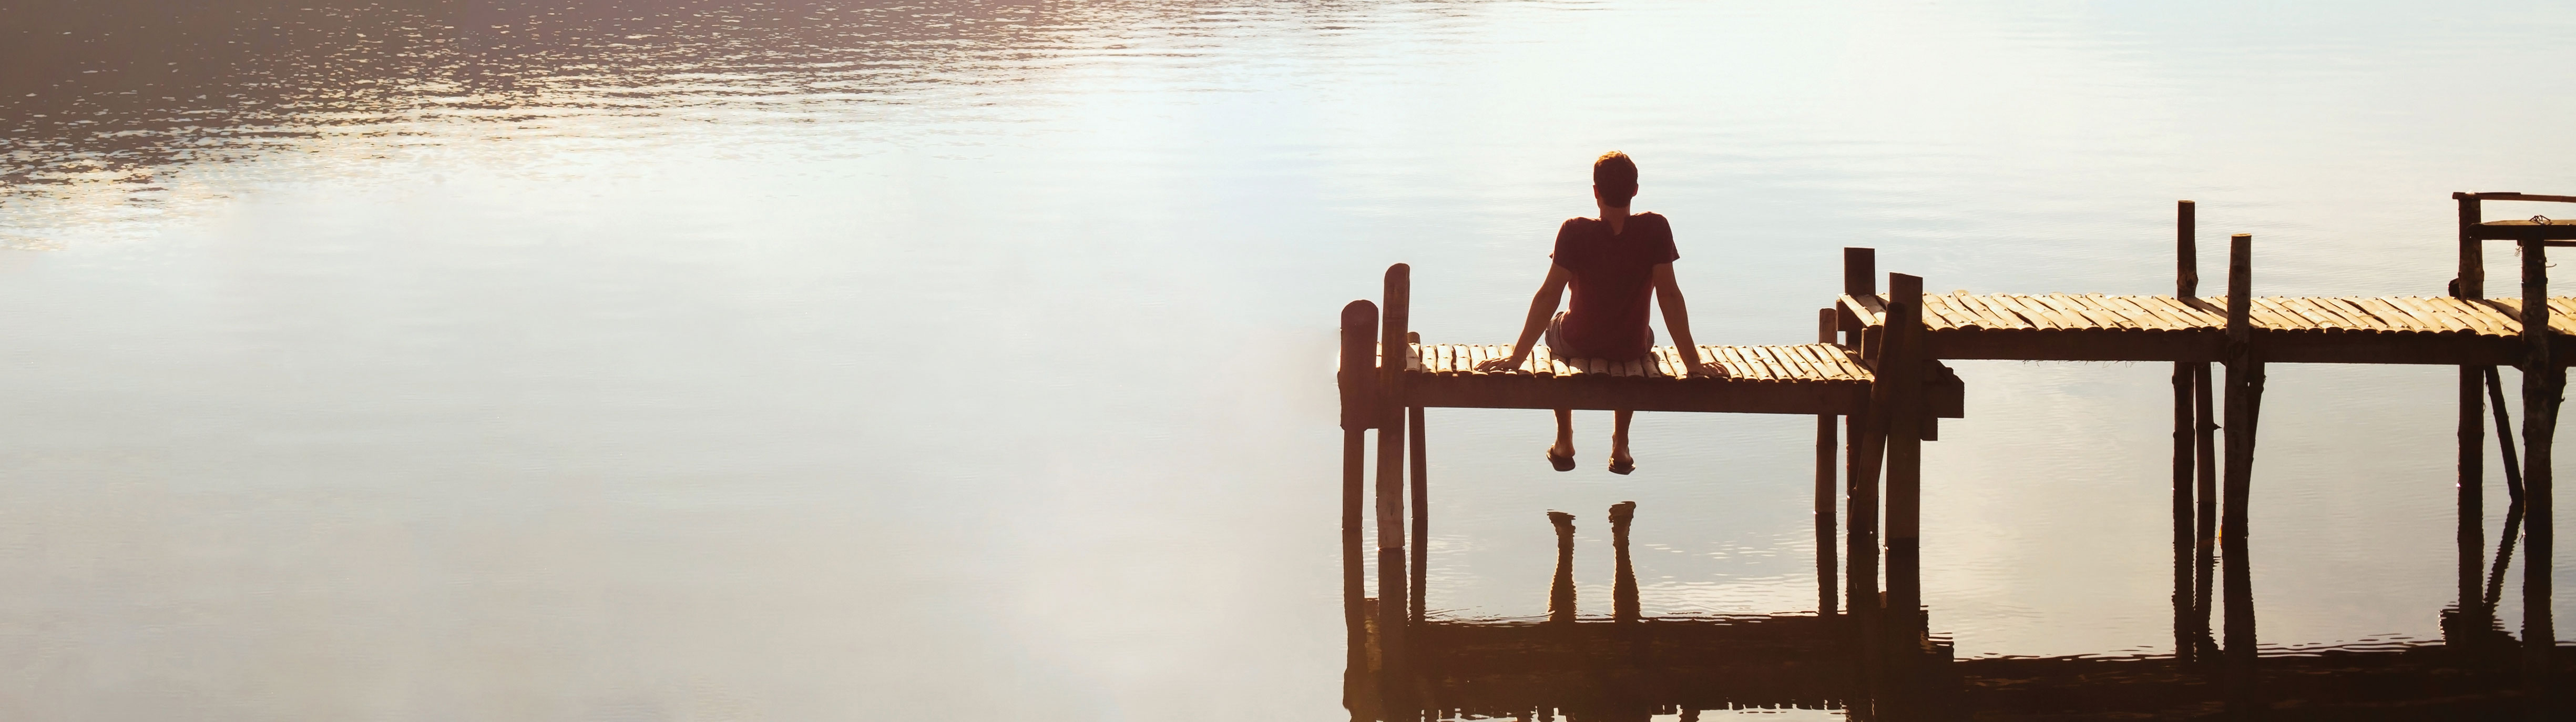 Man sits at the end of a dock overlooking lake.